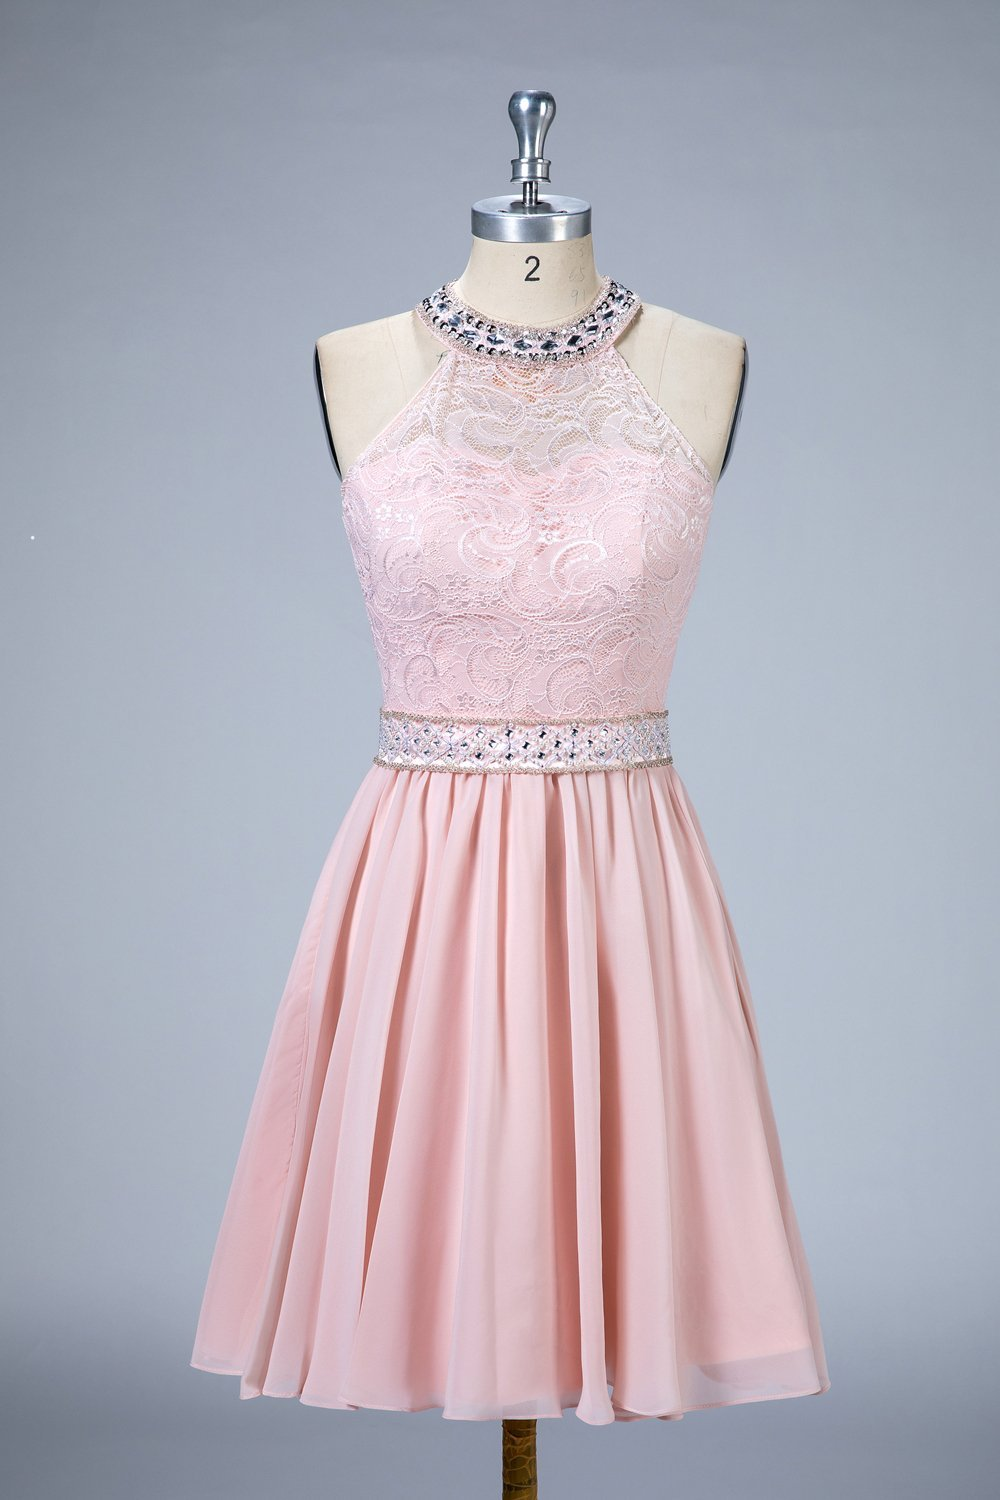 Halter A-Line Lace and Chiffon Homecoming Dresses